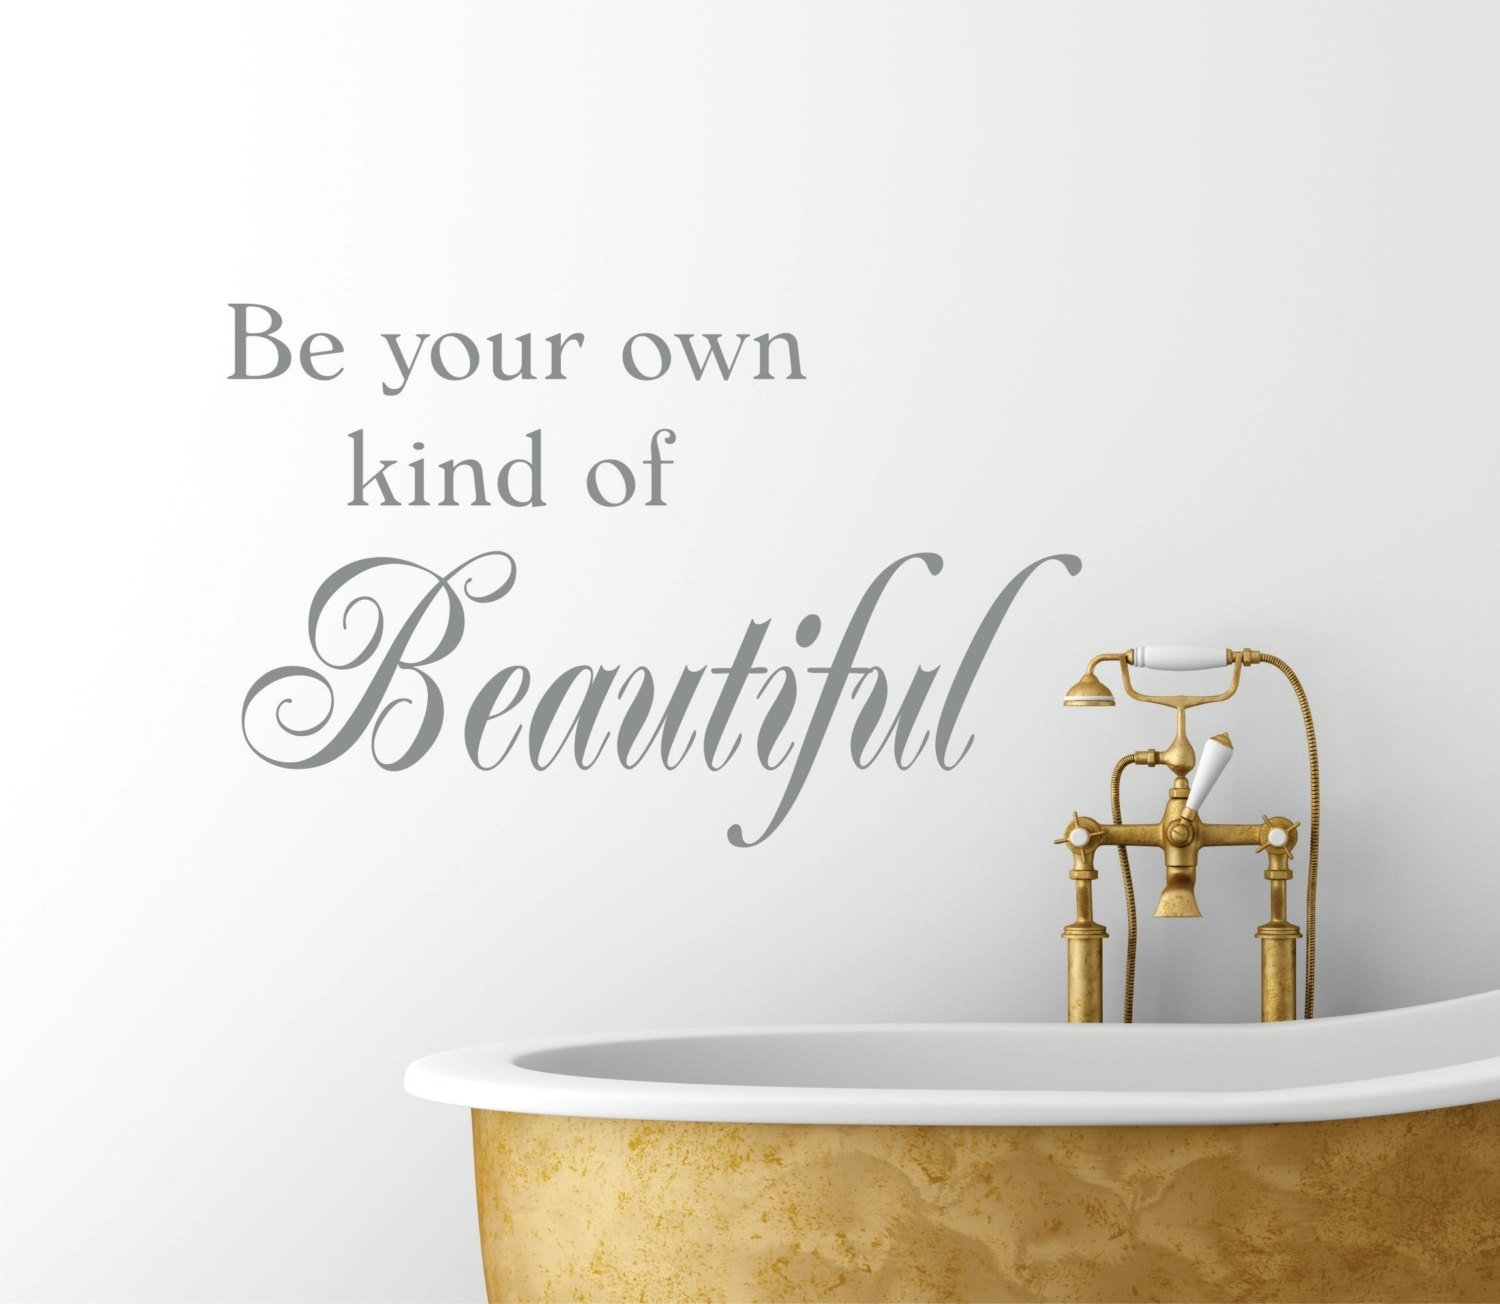 Be Your Own Kind Of Beautiful Vinyl Wall Decal // Bathroom Decor With Regard To Newest Be Your Own Kind Of Beautiful Wall Art (Gallery 9 of 15)